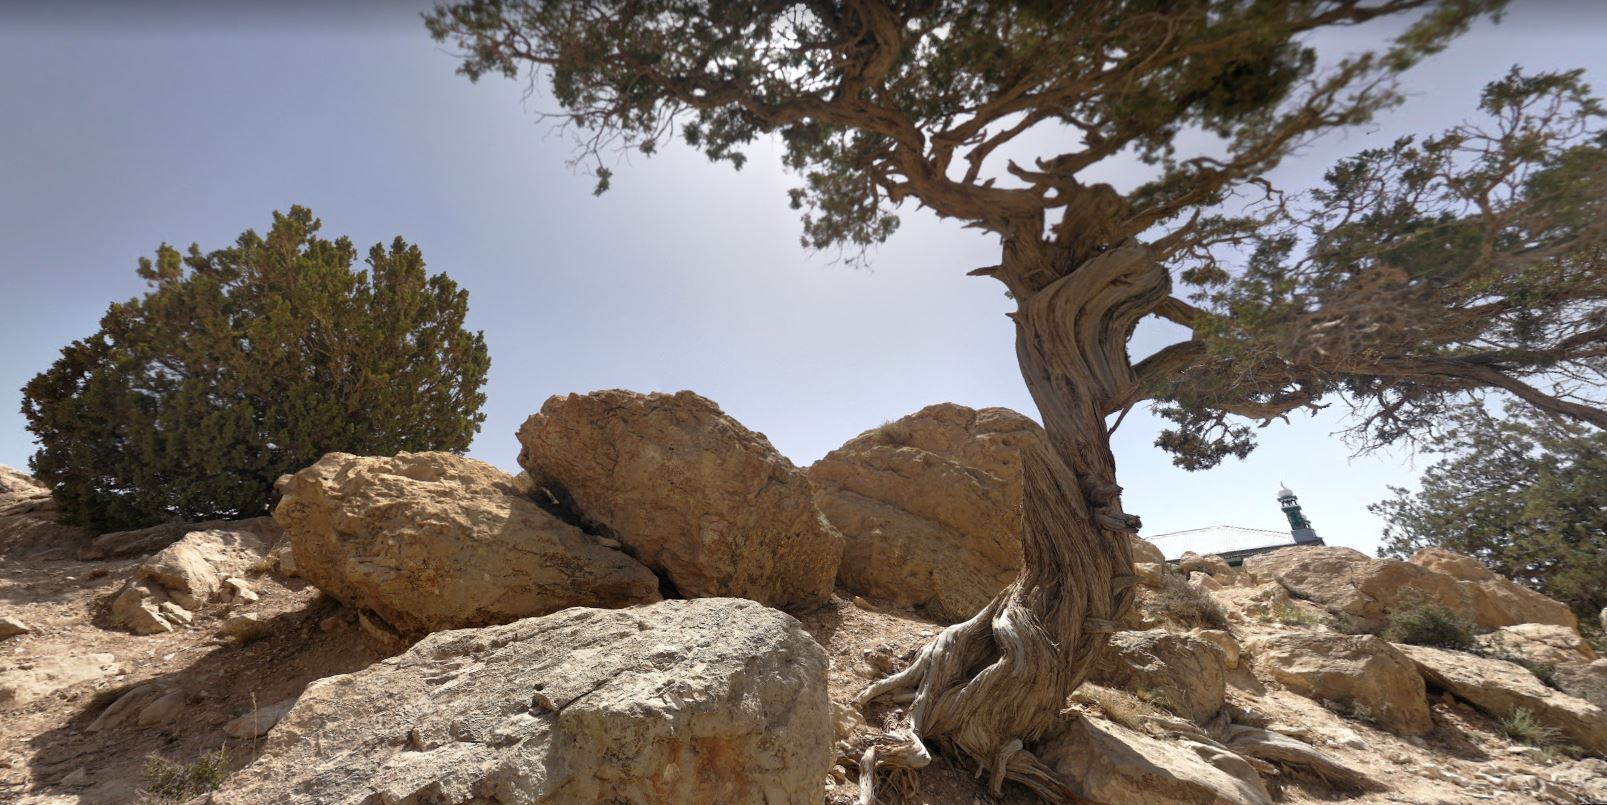 The Juniper Forests of Harboi Kalat Balochistan - forestrypedia.com